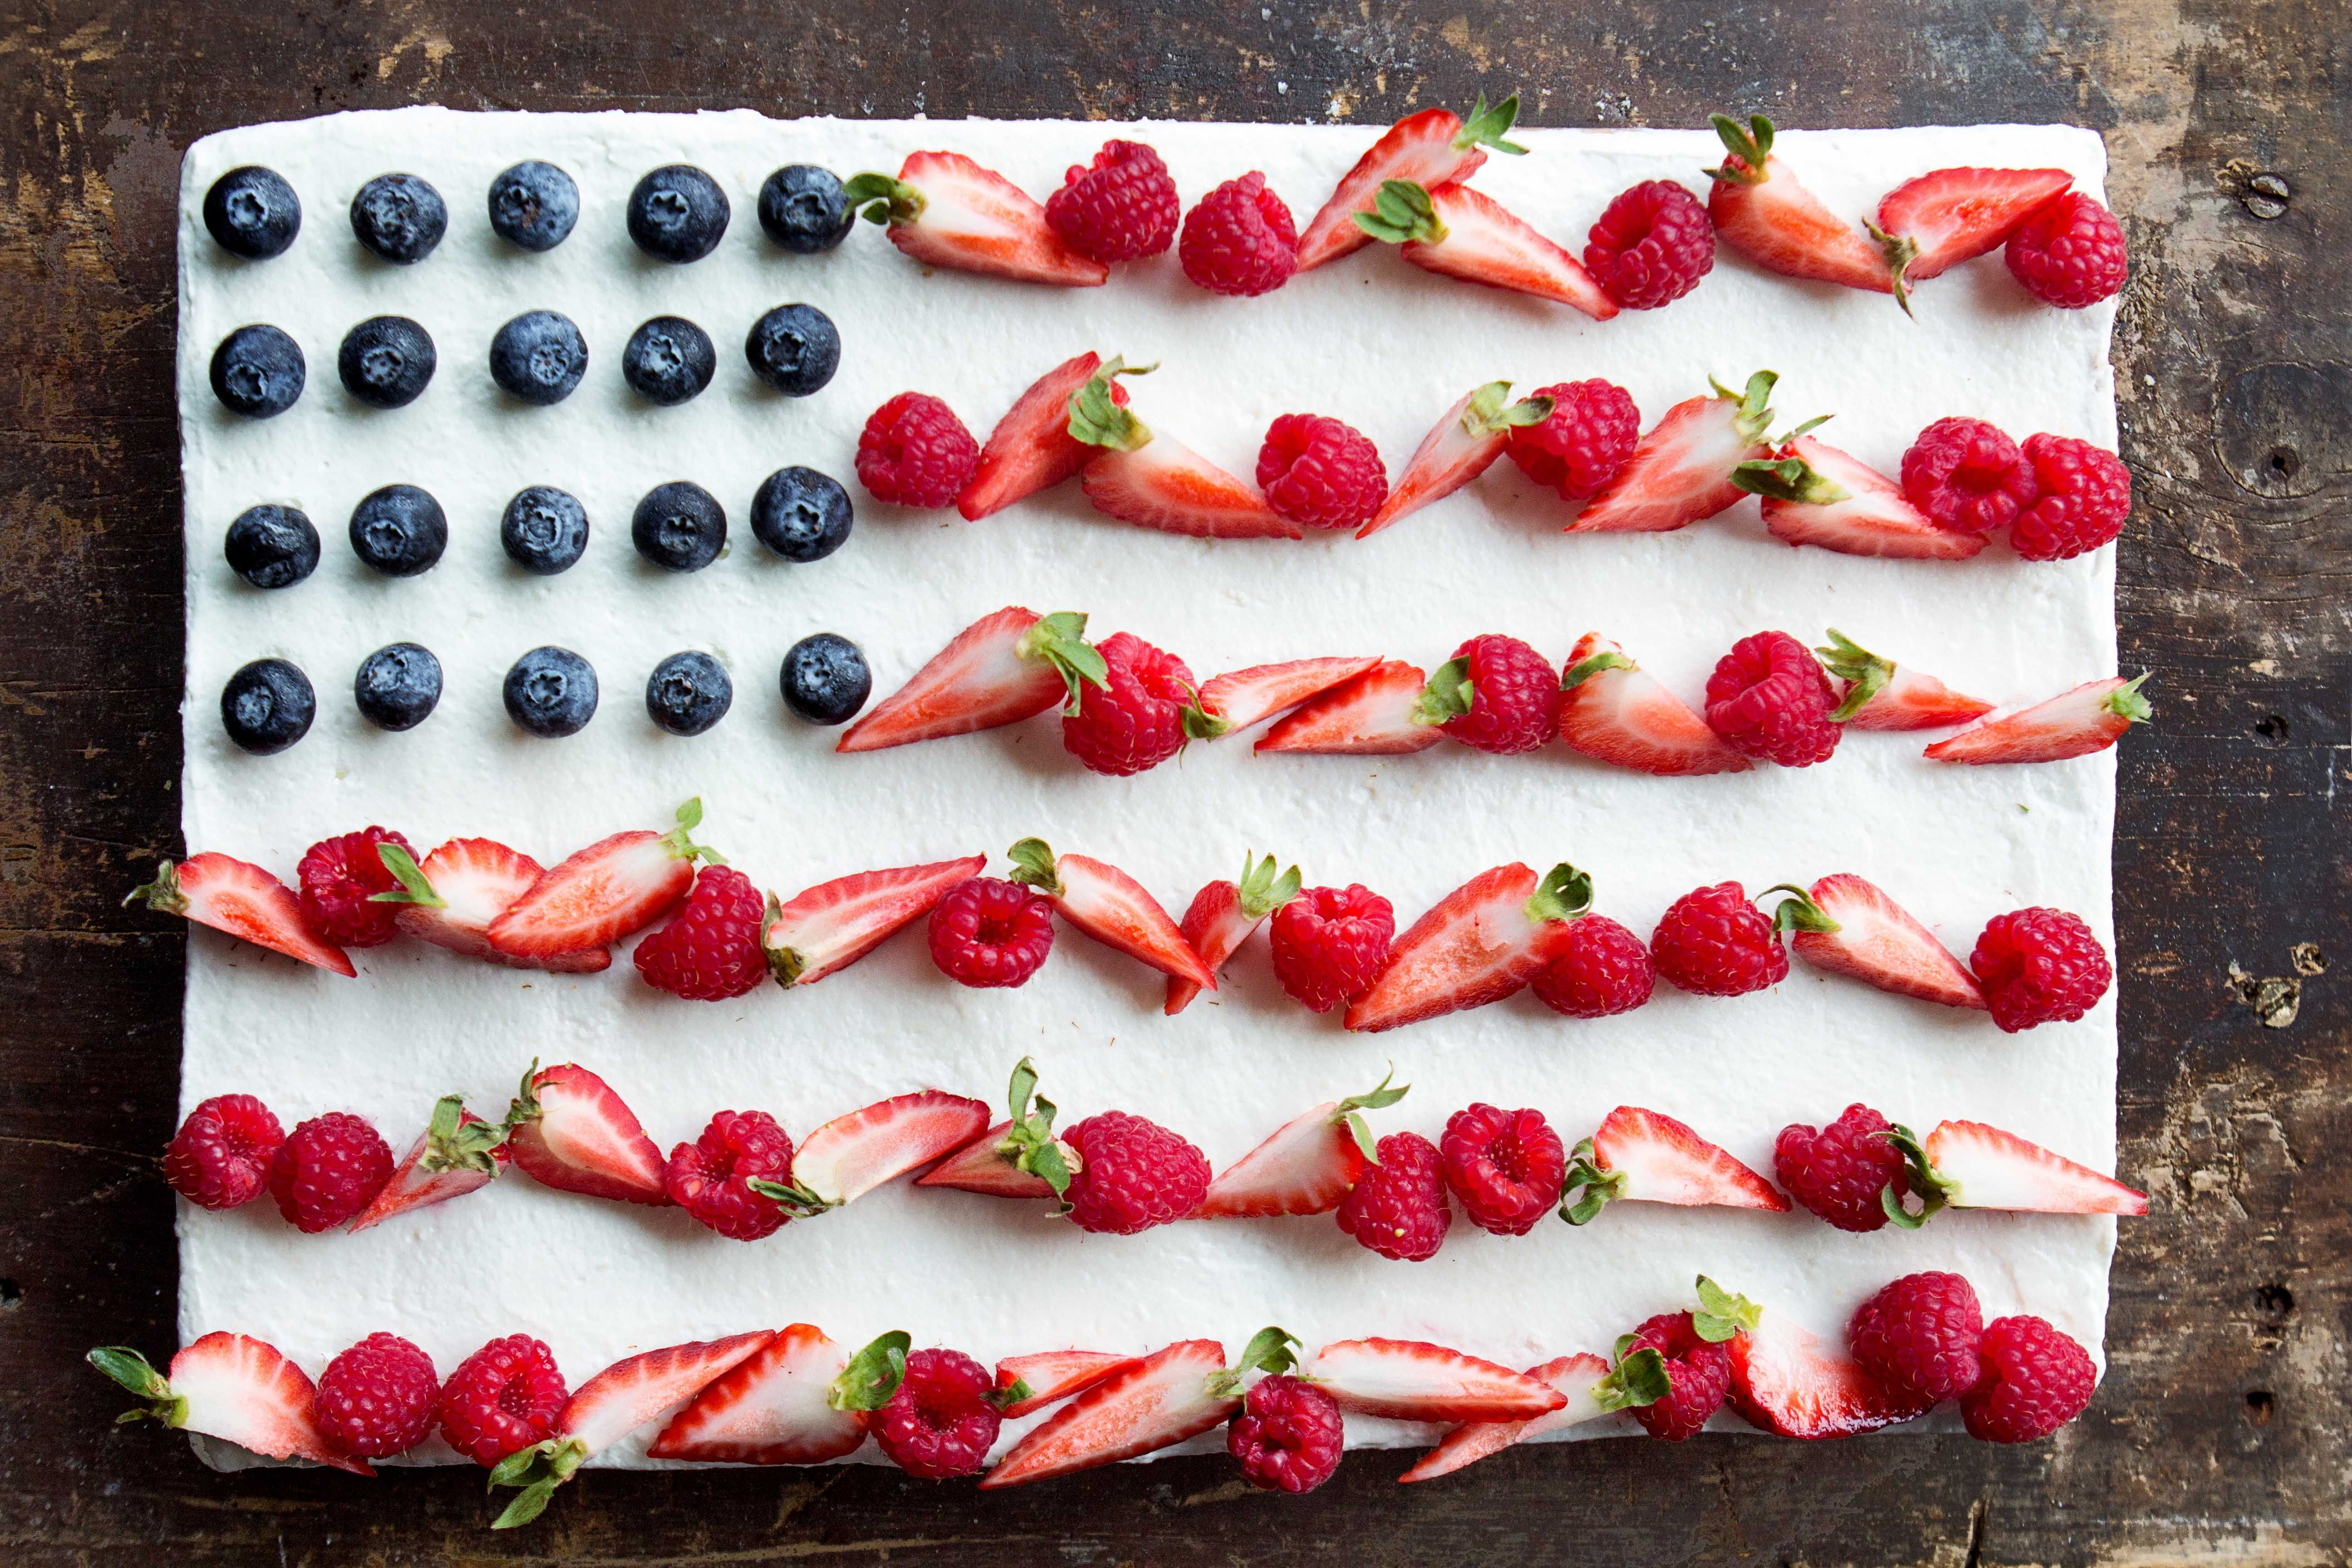 15 Best 4th of July Cake Recipes American Flag Cake Ideas for